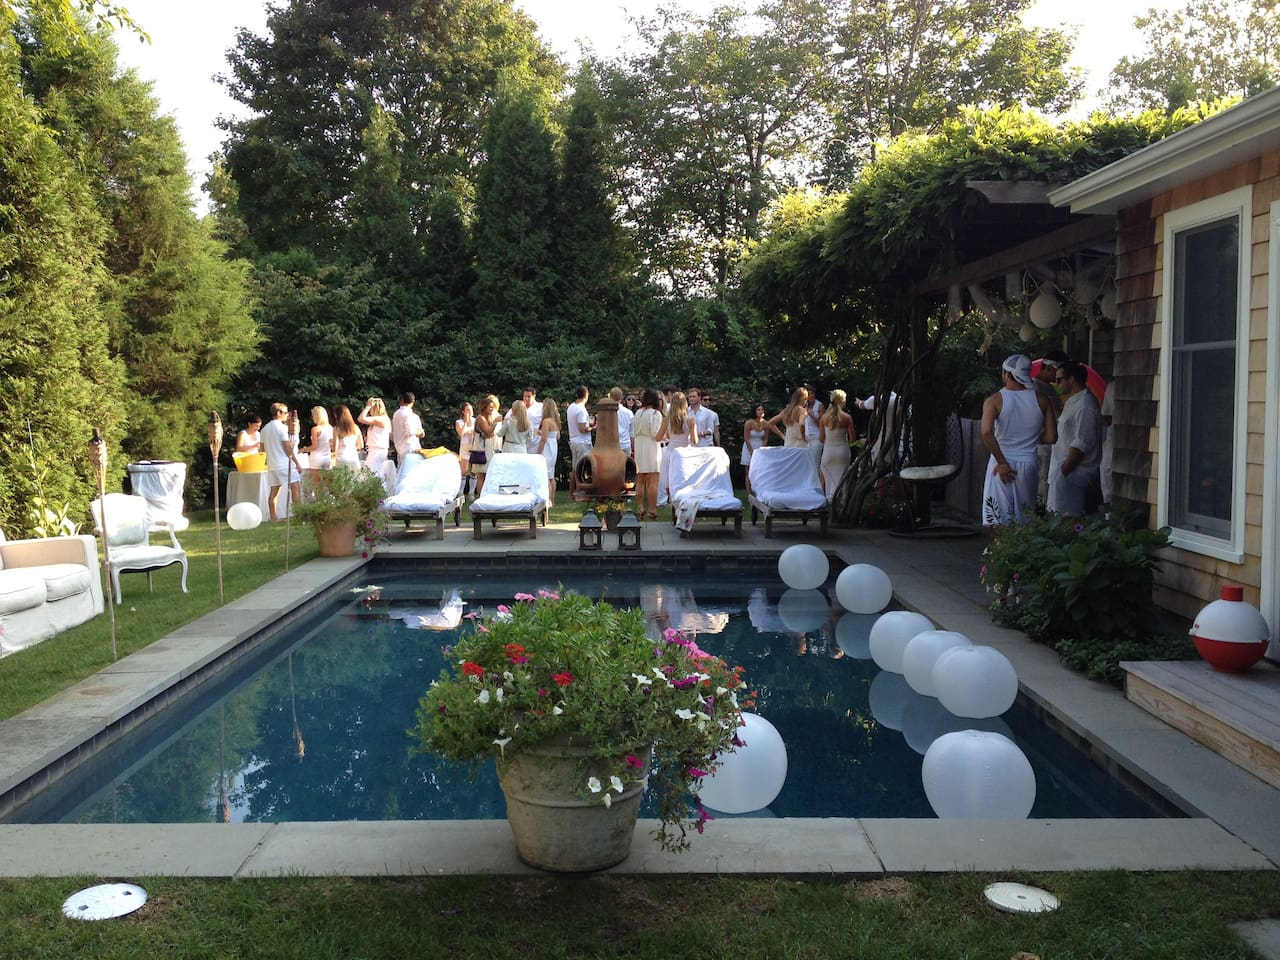 perfect for summer time getaways or relaxing family vacations-in the heart of east hampton